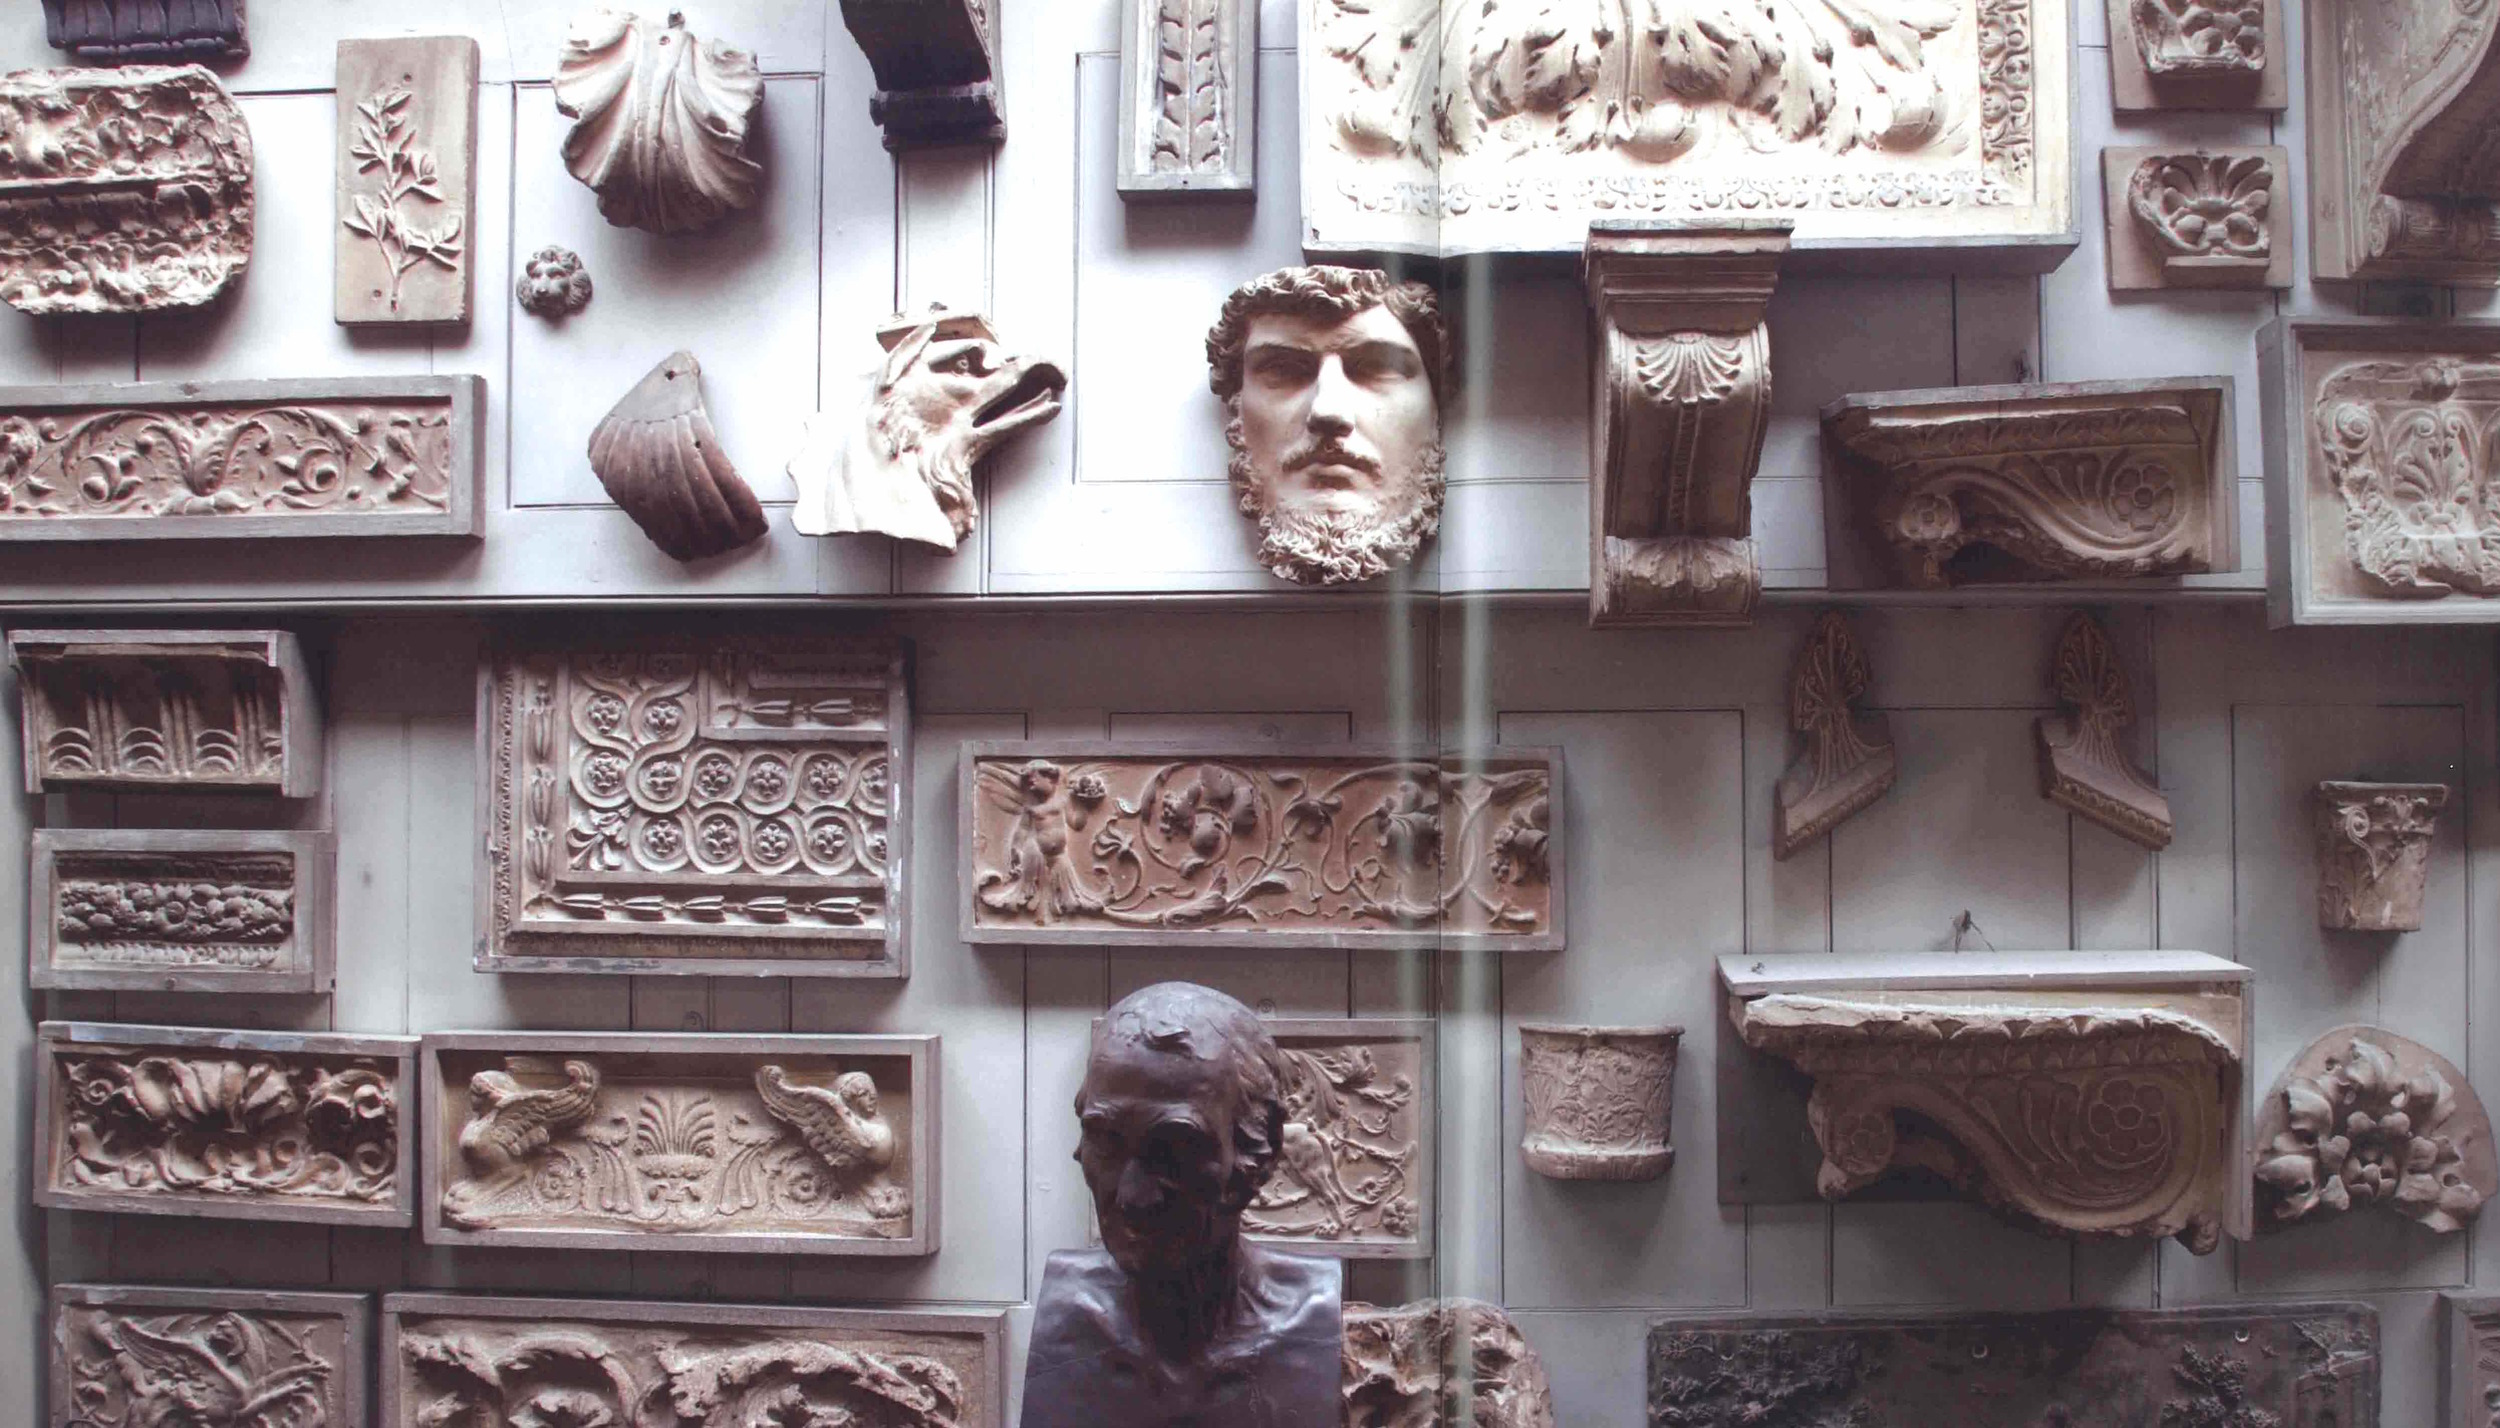 The Students' Room looking north, showing the extensive collection of casts of Classical architectural ornament.( Sir John Soane's Museum, London, By Tim Knox, 2008)